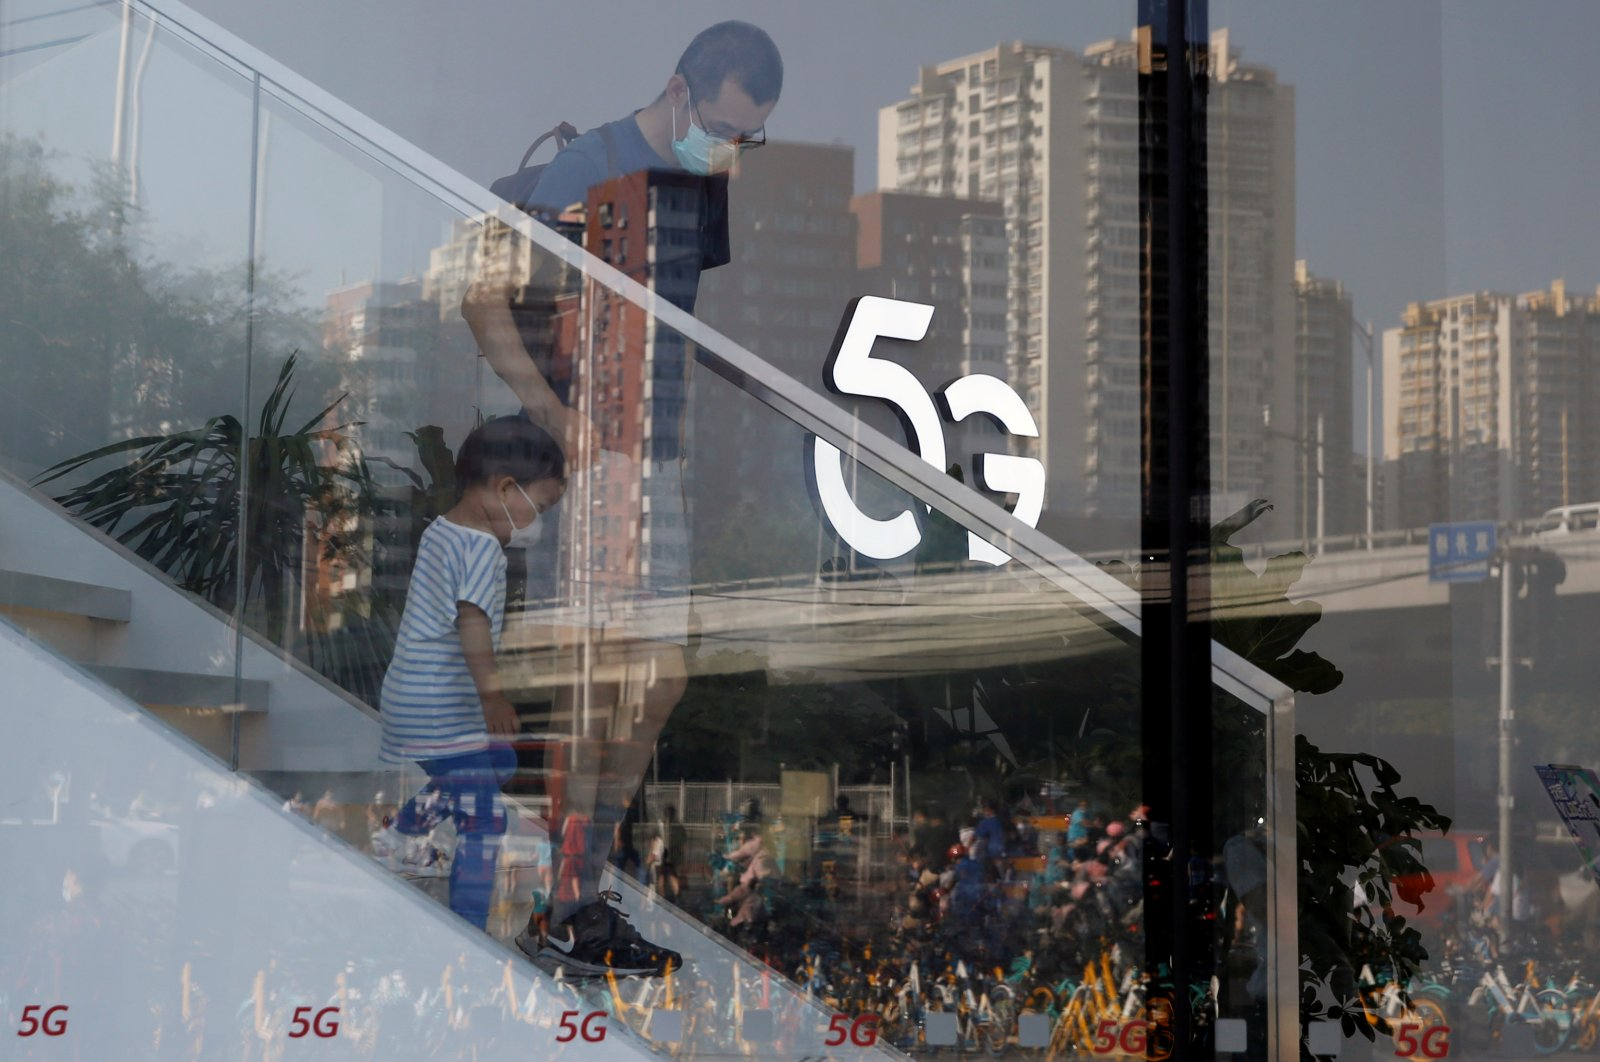 A man and a child wearing face masks walk past a 5G sign inside a Huawei store at a shopping mall in Beijing, China, July 14, 2020. (REUTERS Photo)